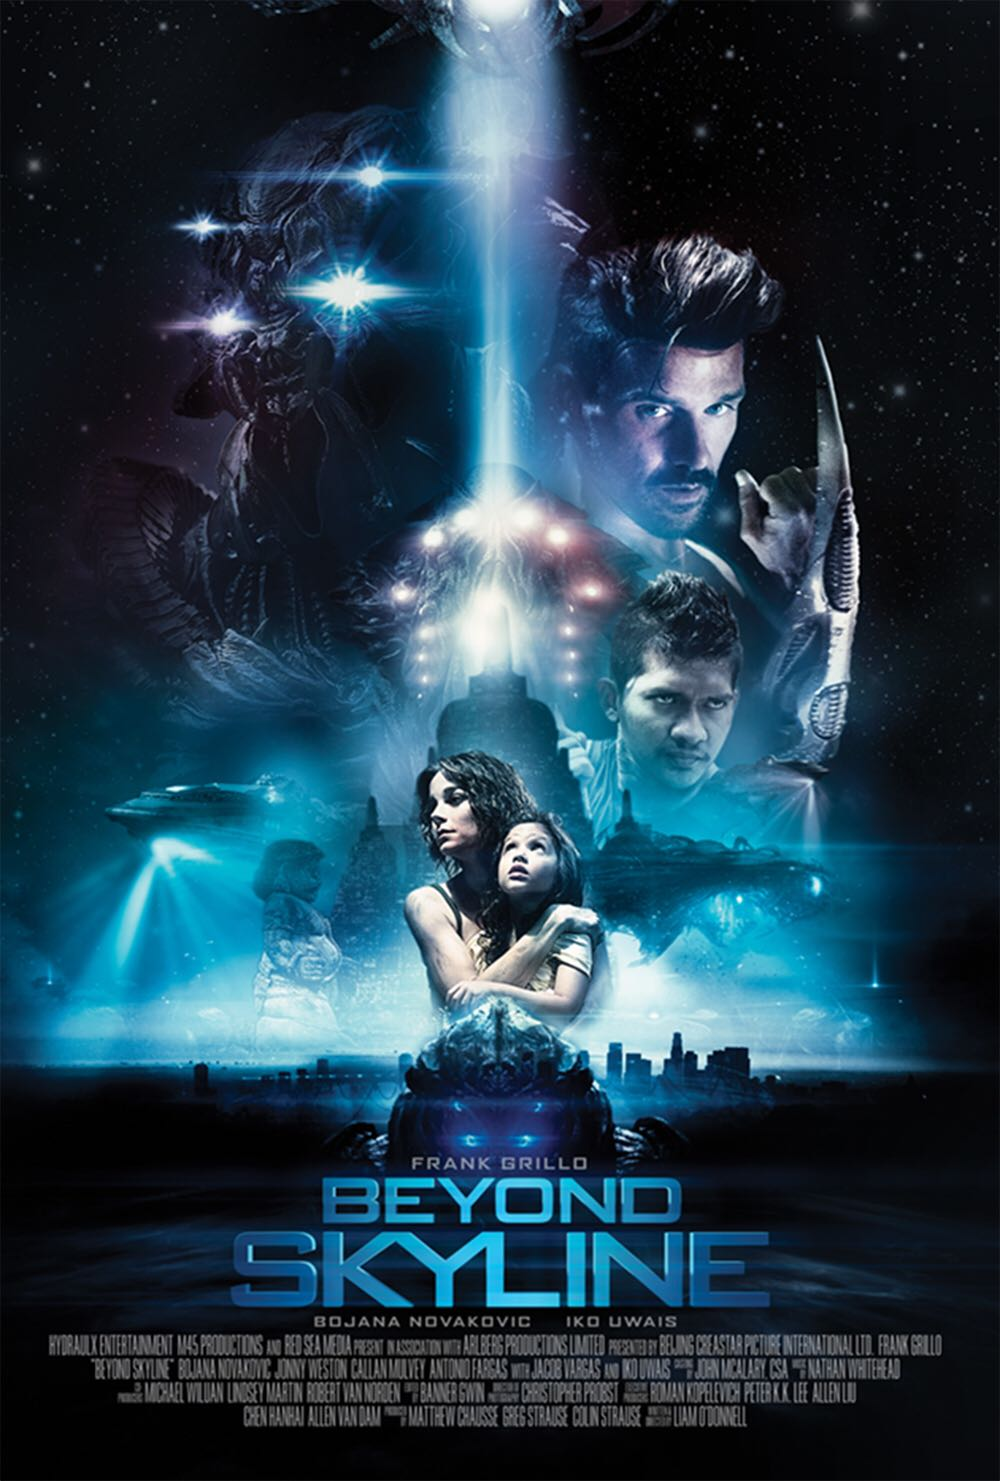 remember-that-awful-sci-fi-film-skyline-well-heres-the-awesome-trailer-to-the-sequel-beyond-skyline1